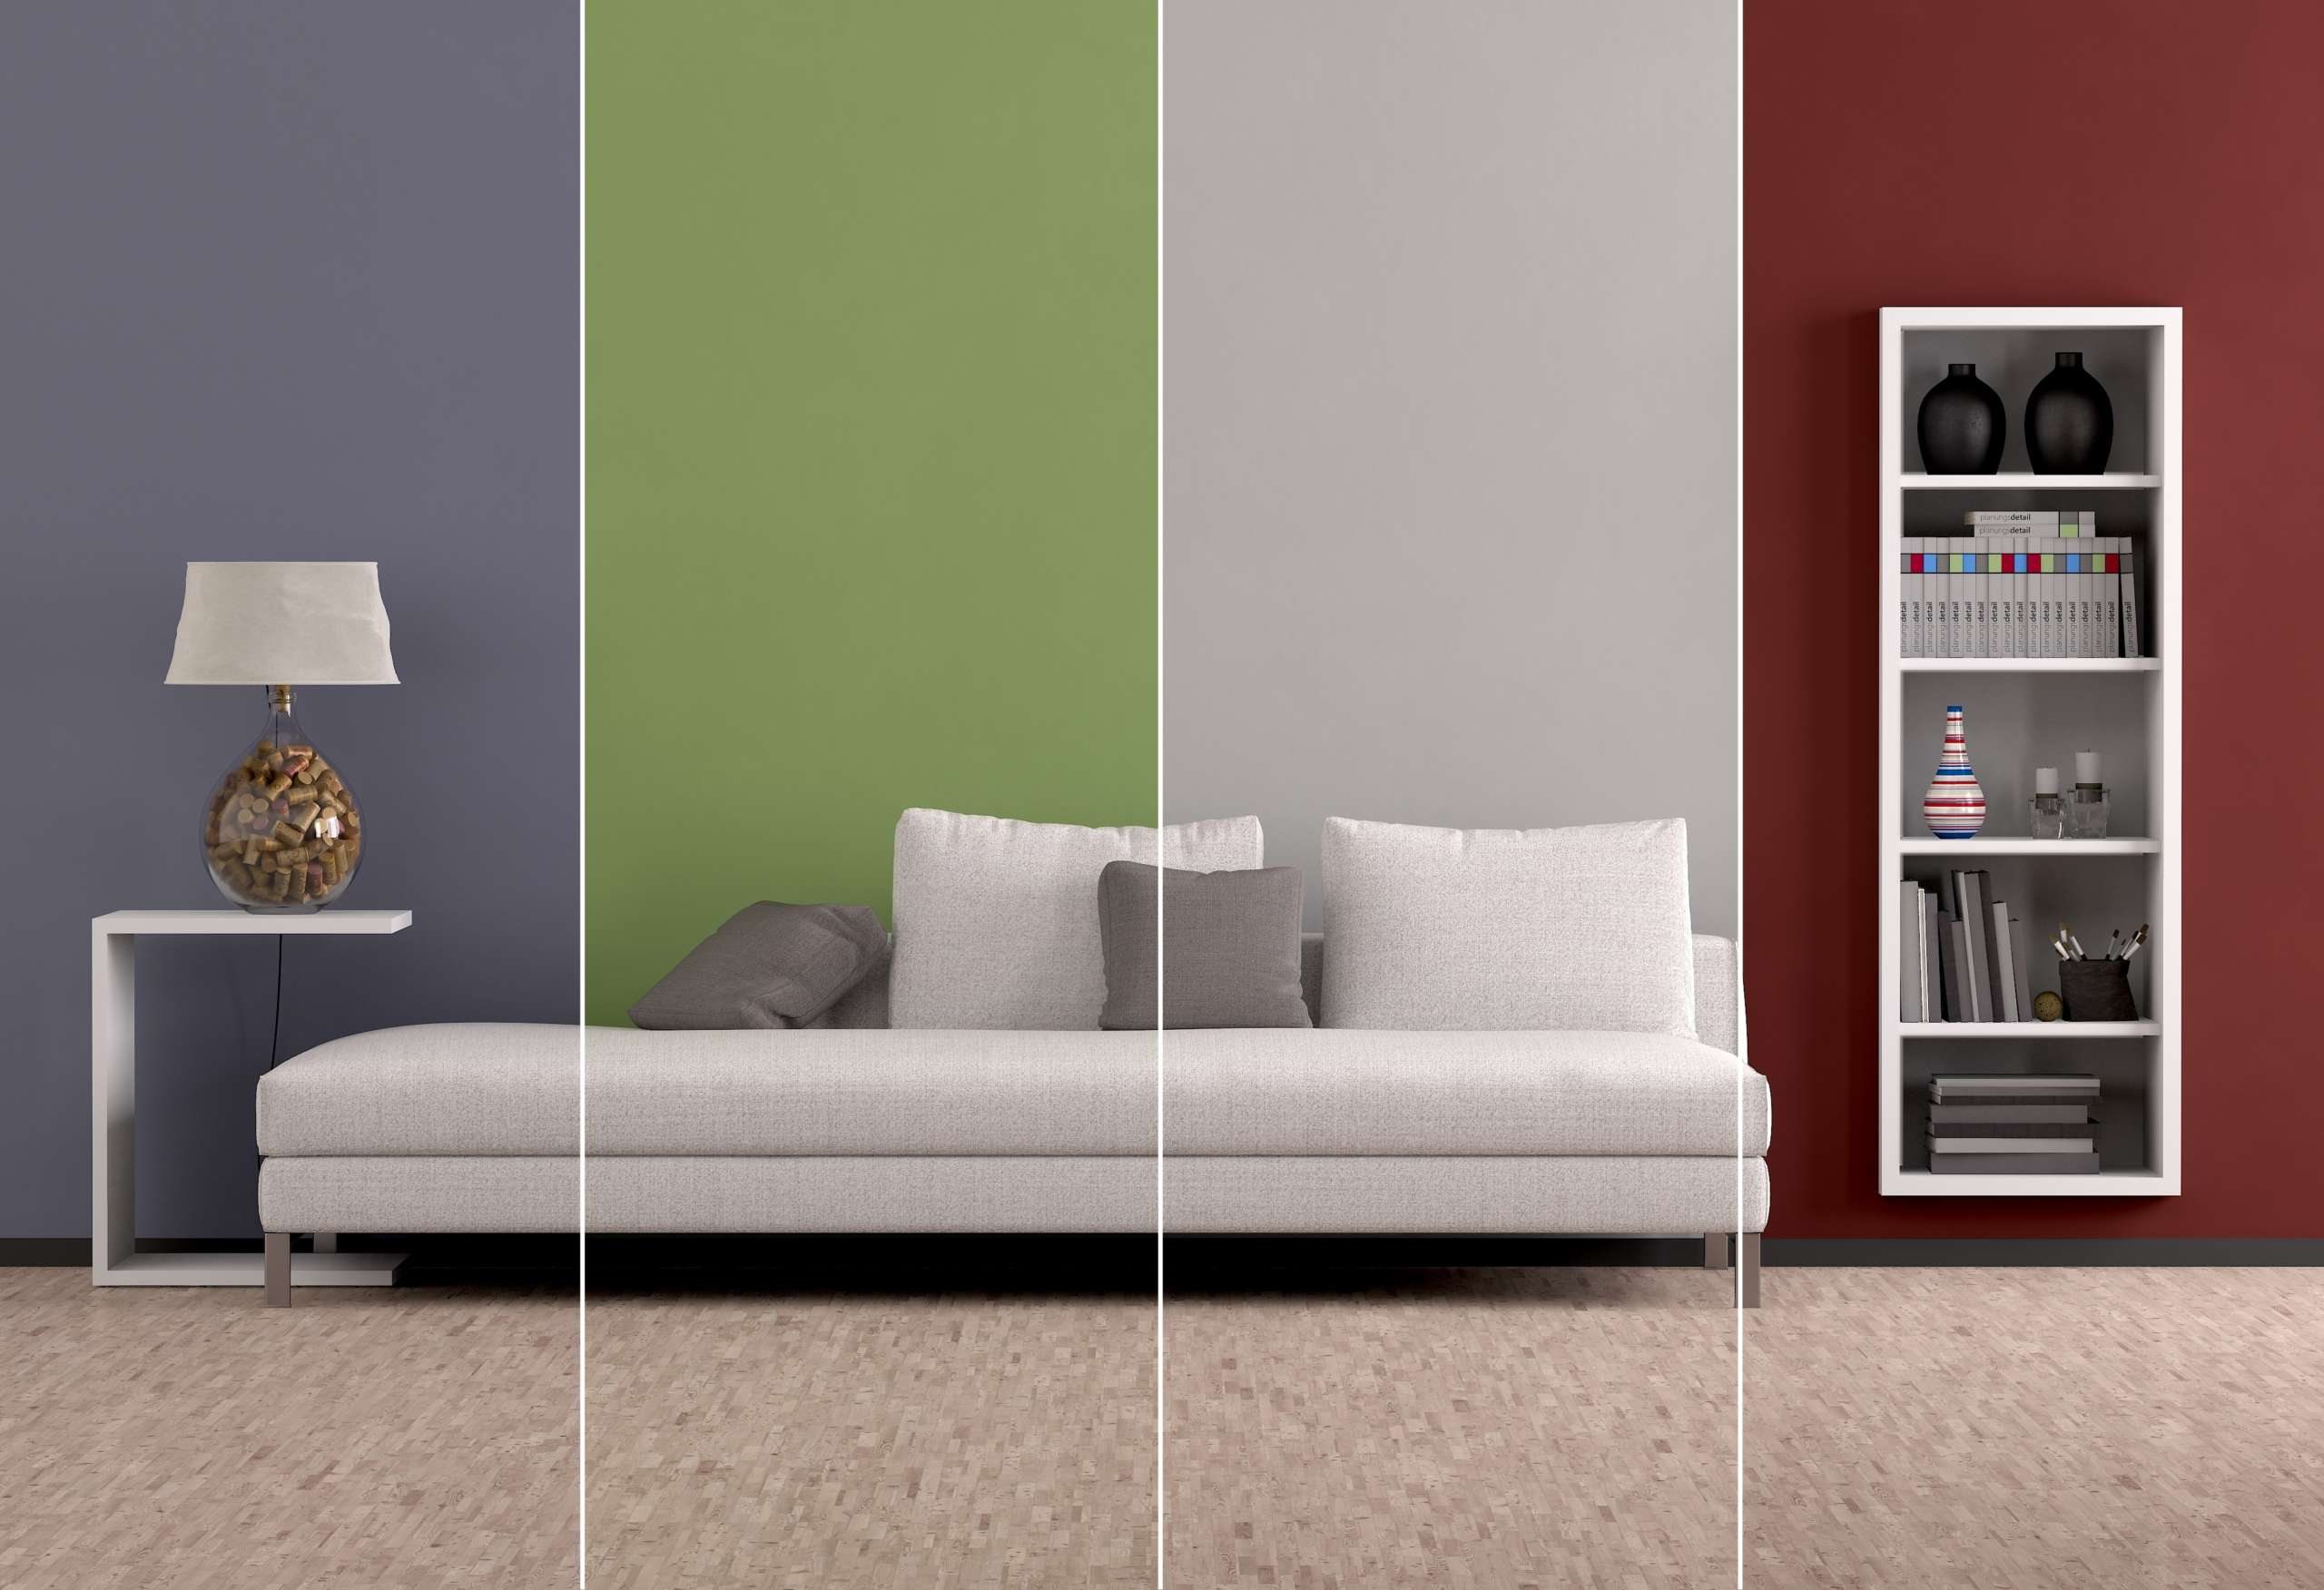 How A Room's Color Can Affect Your Mood